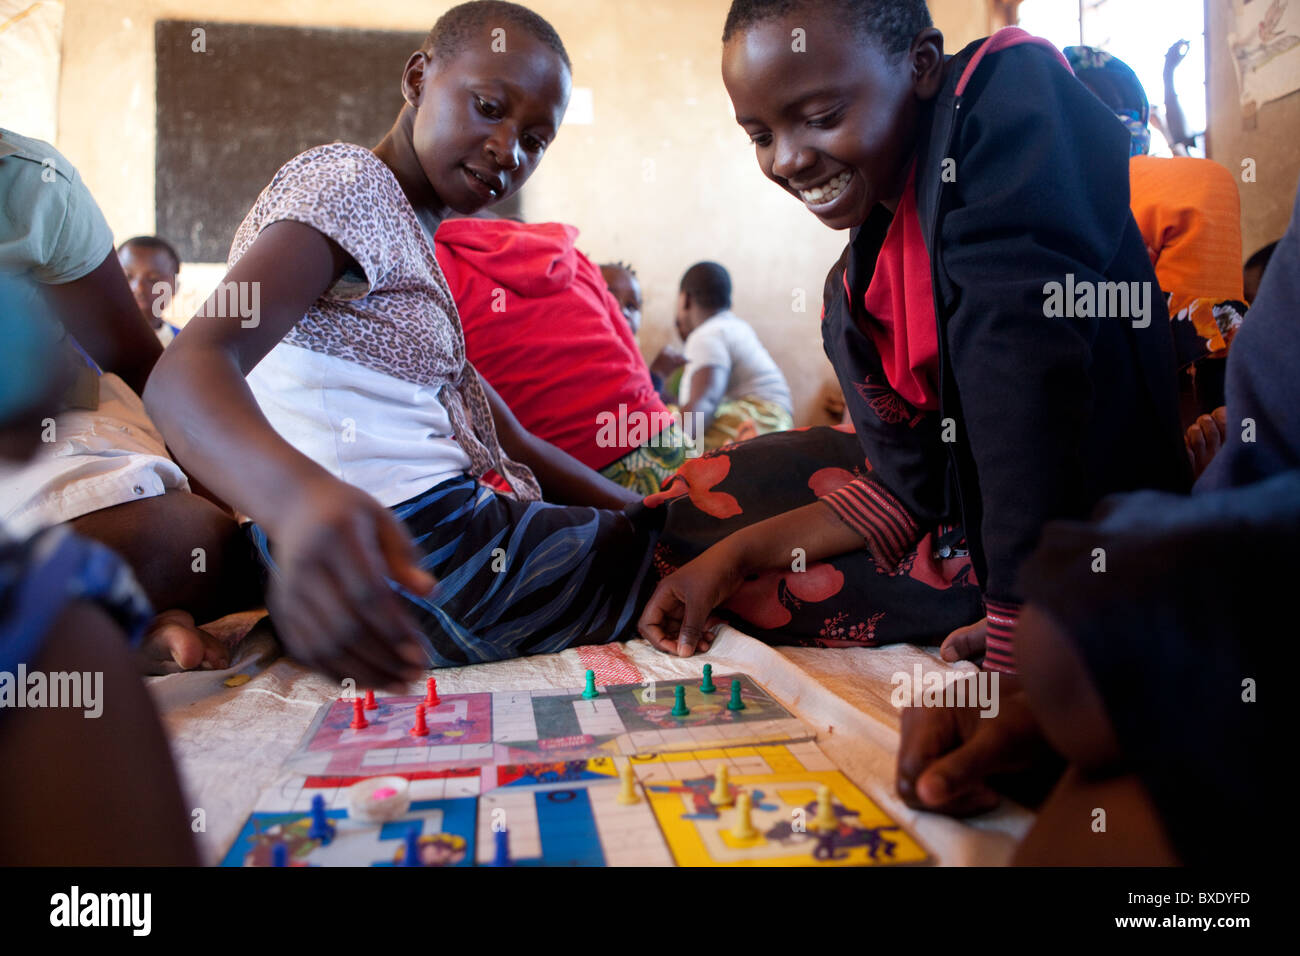 Adolescent girls play board games together at an after school program in Iringa, Tanzania, East Africa. - Stock Image